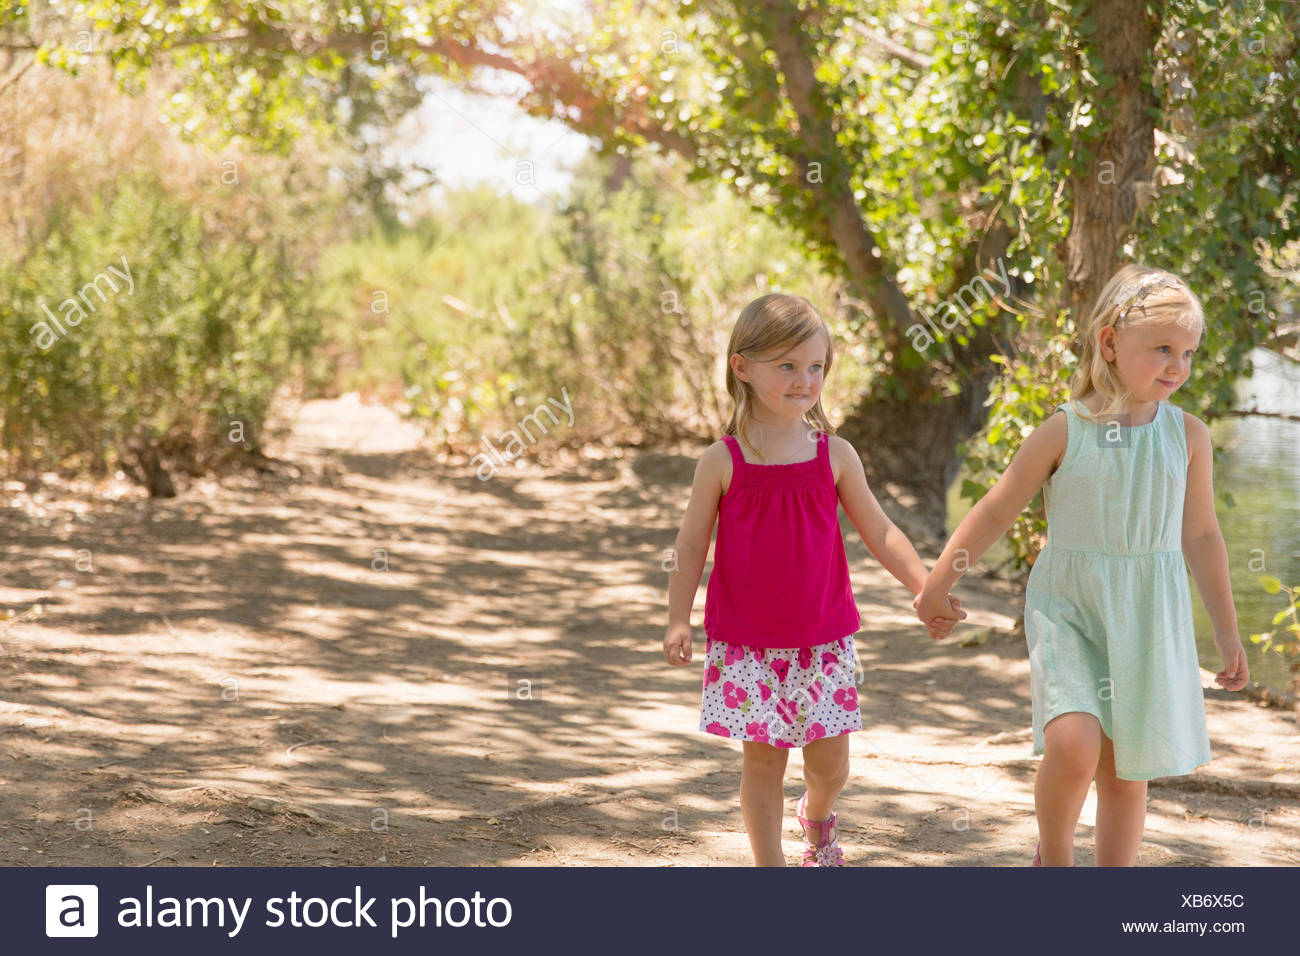 Two young sisters strolling and holding hands on riverbank - Stock Image